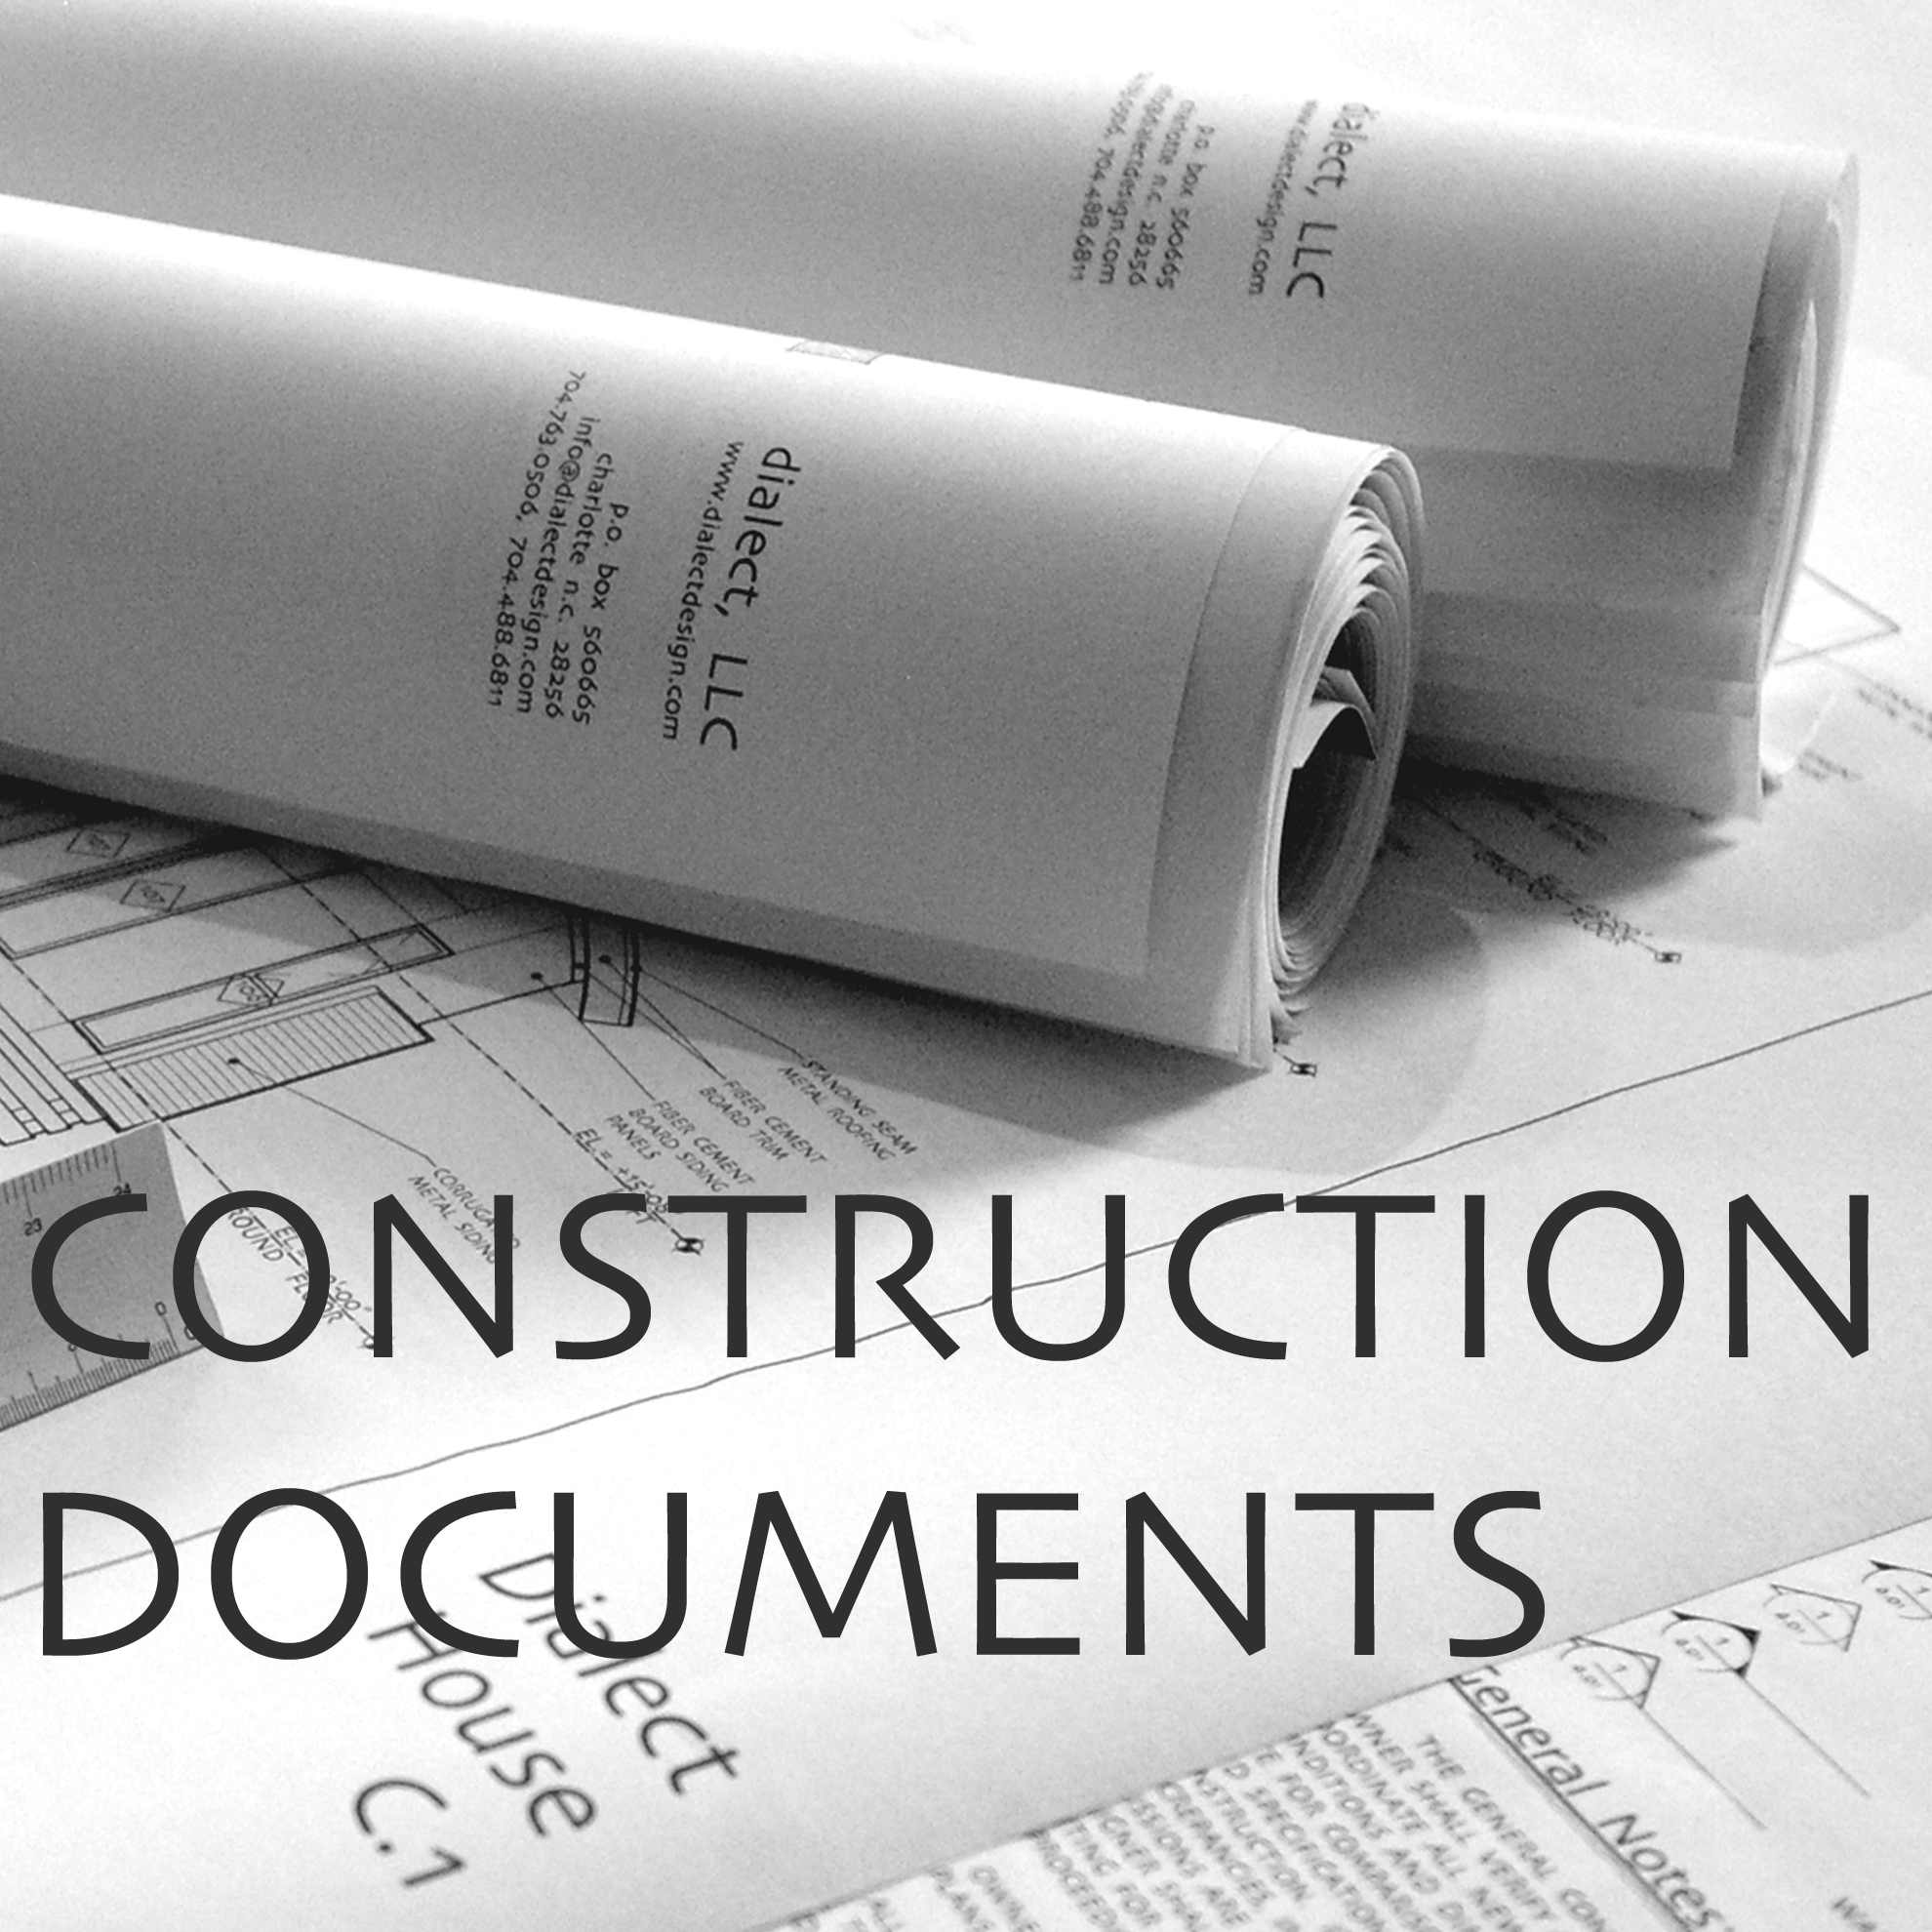 CONSTRUCTION DOCUMENTS PIC 2.jpg